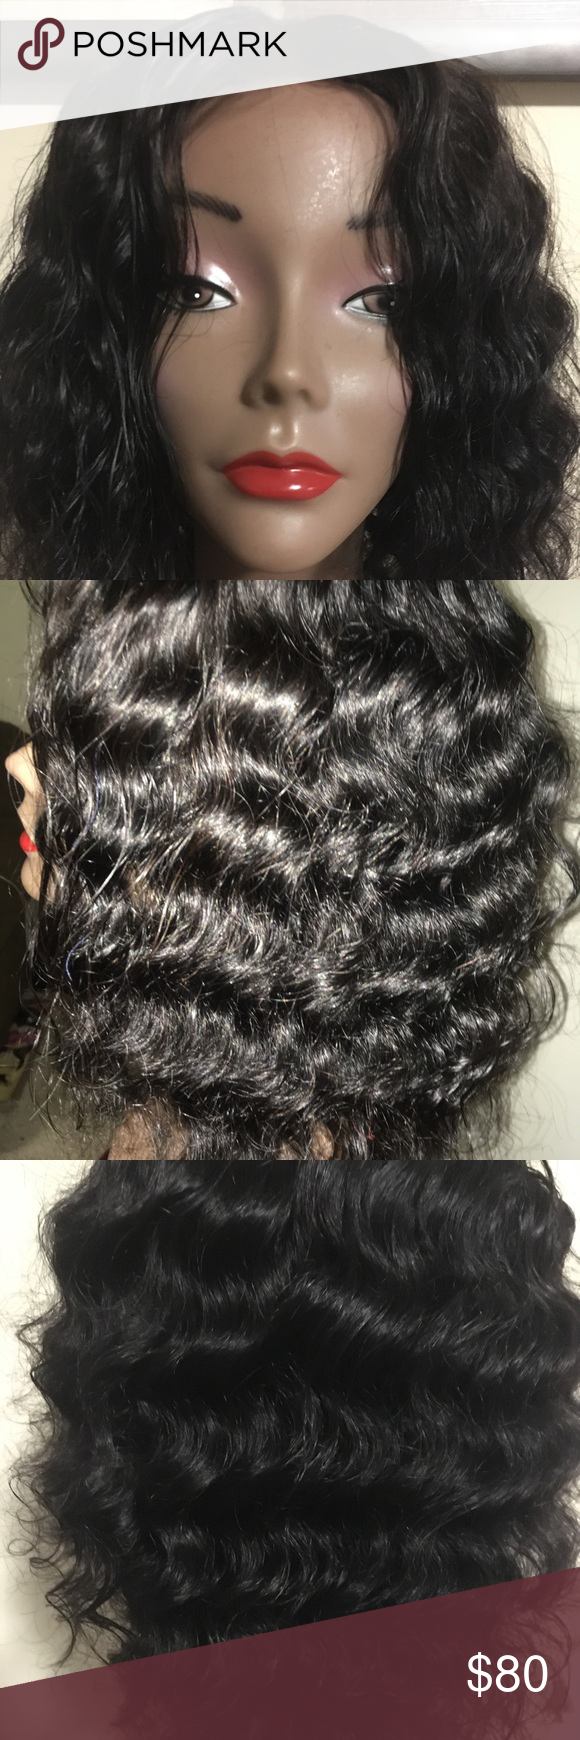 Deep wave brazilian curly hair wig 12 inch deep wave brazilian curly hair wig. 100% brazilian hair, middle lace part. May be dyed, permed or straightened. Medium cap. Accessories Hair Accessories